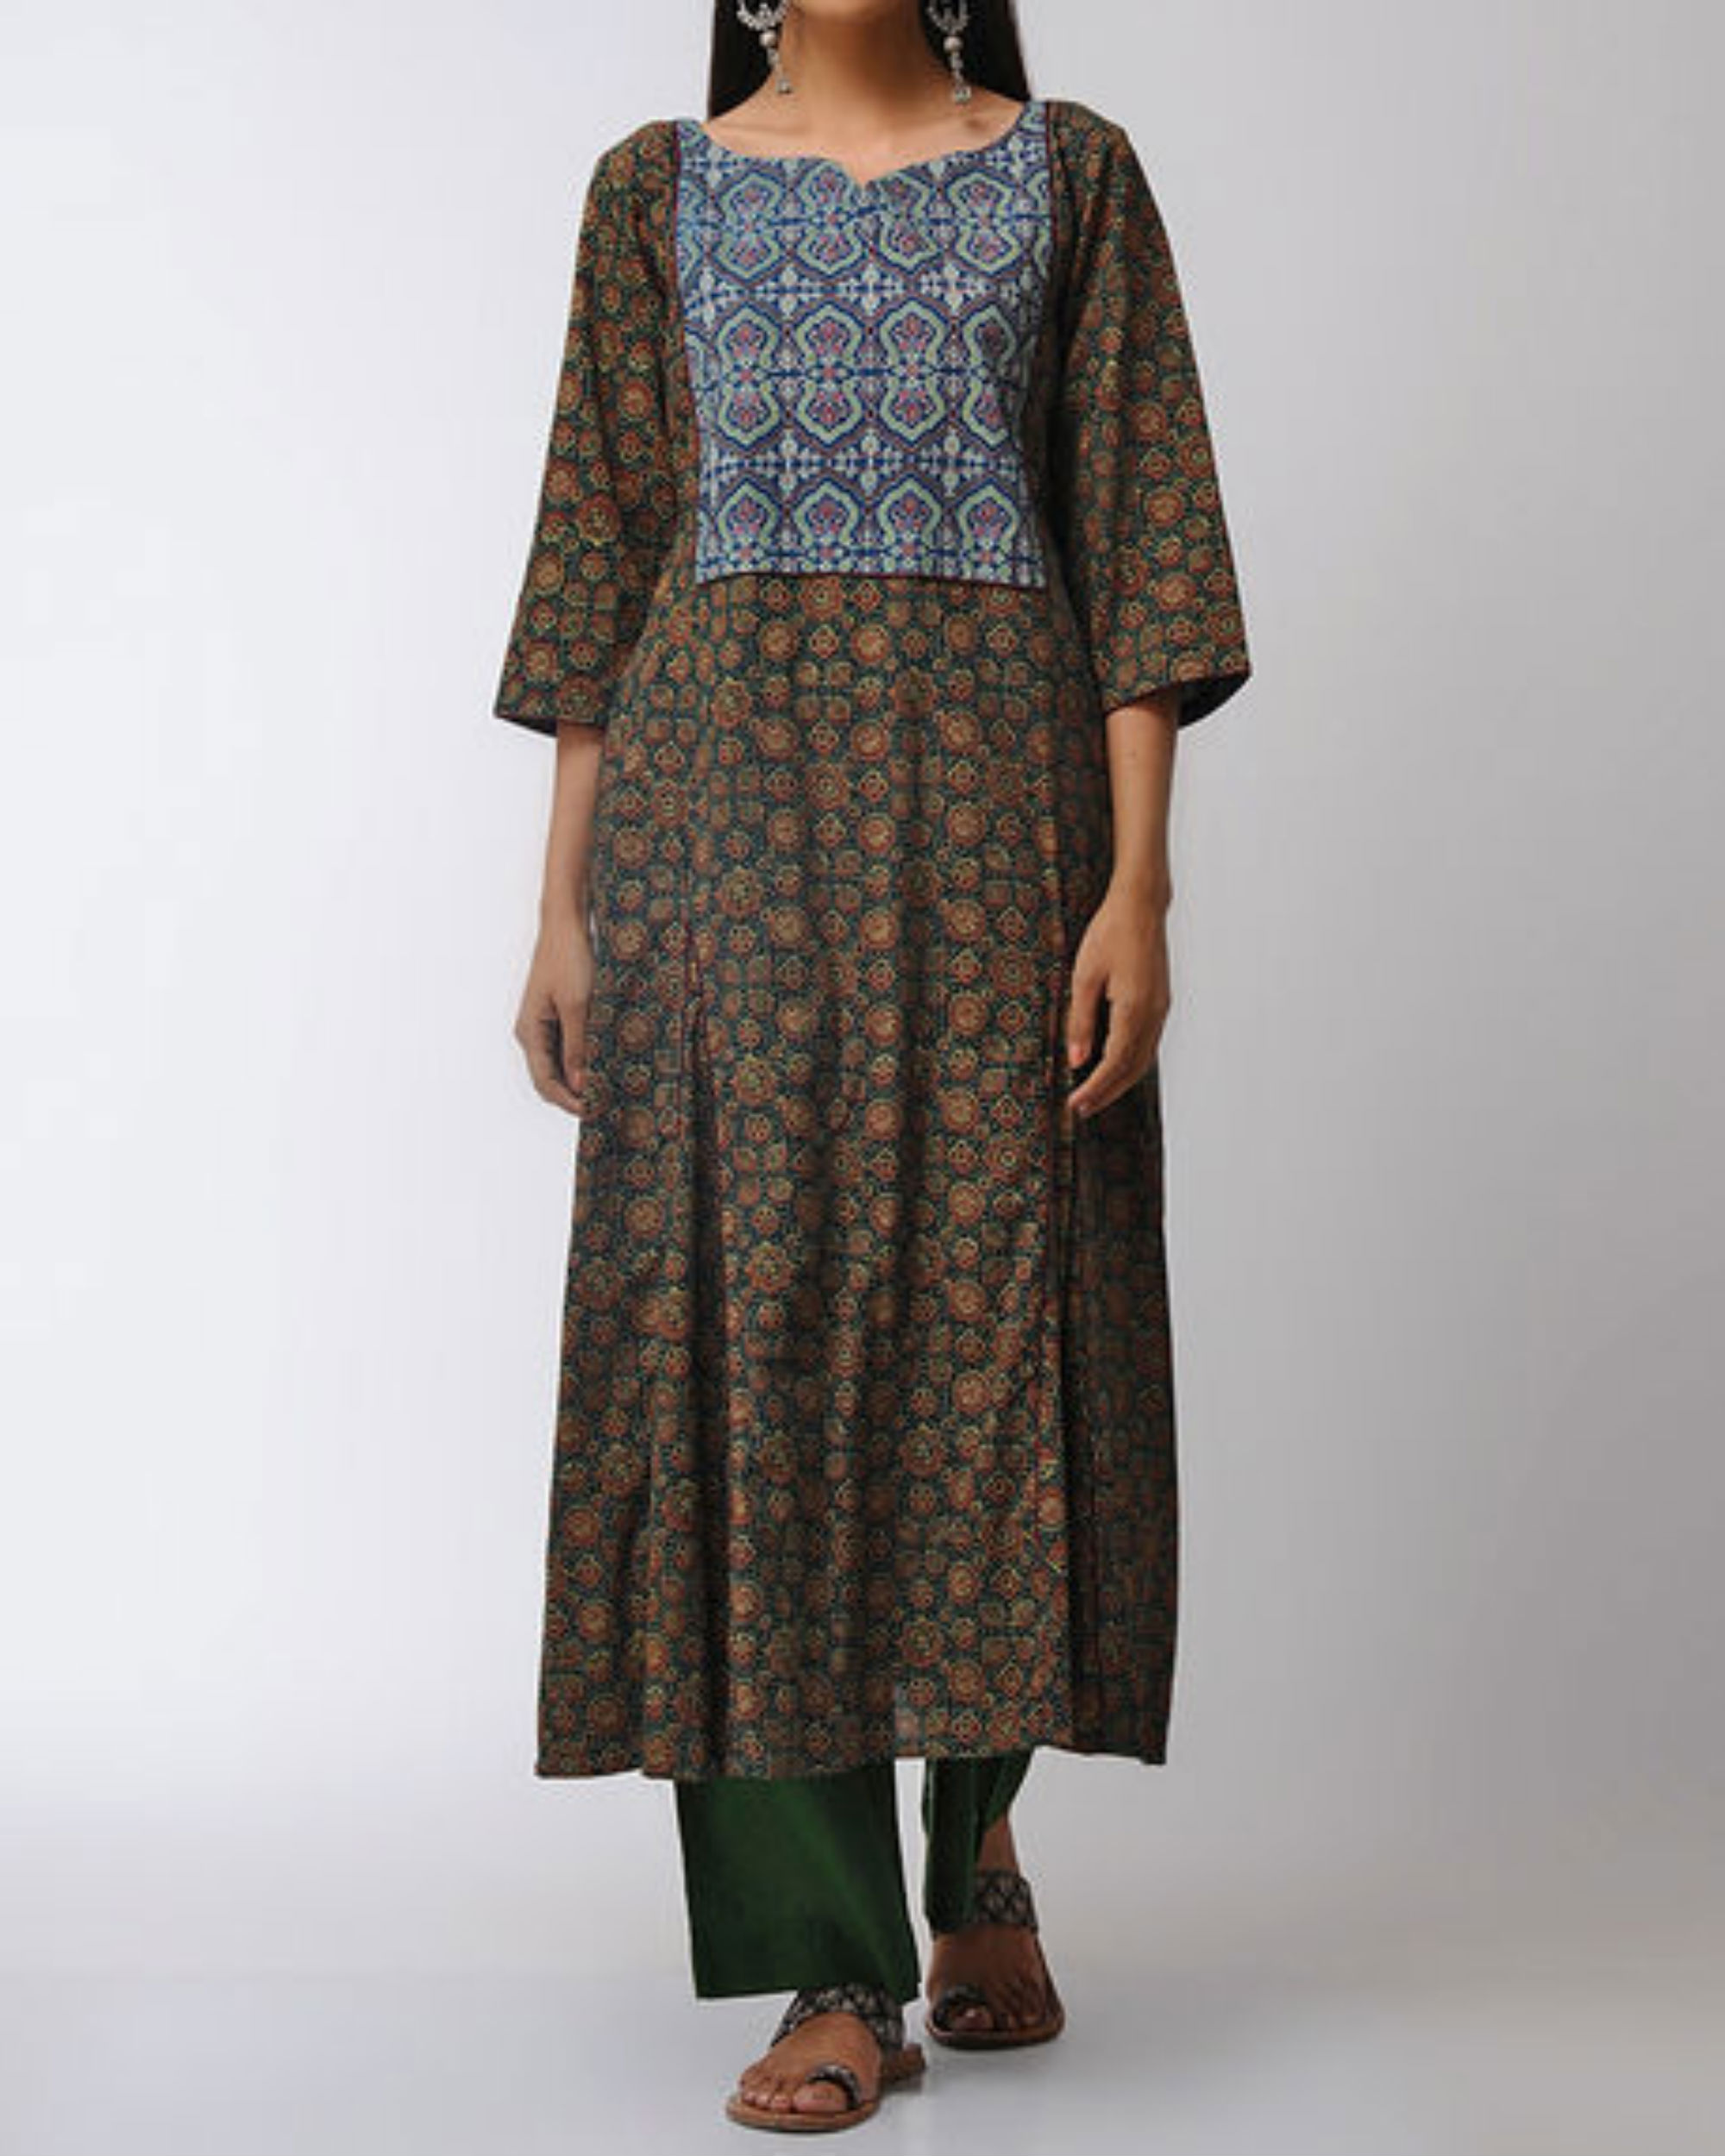 Green gored kurta with blue patched yoke